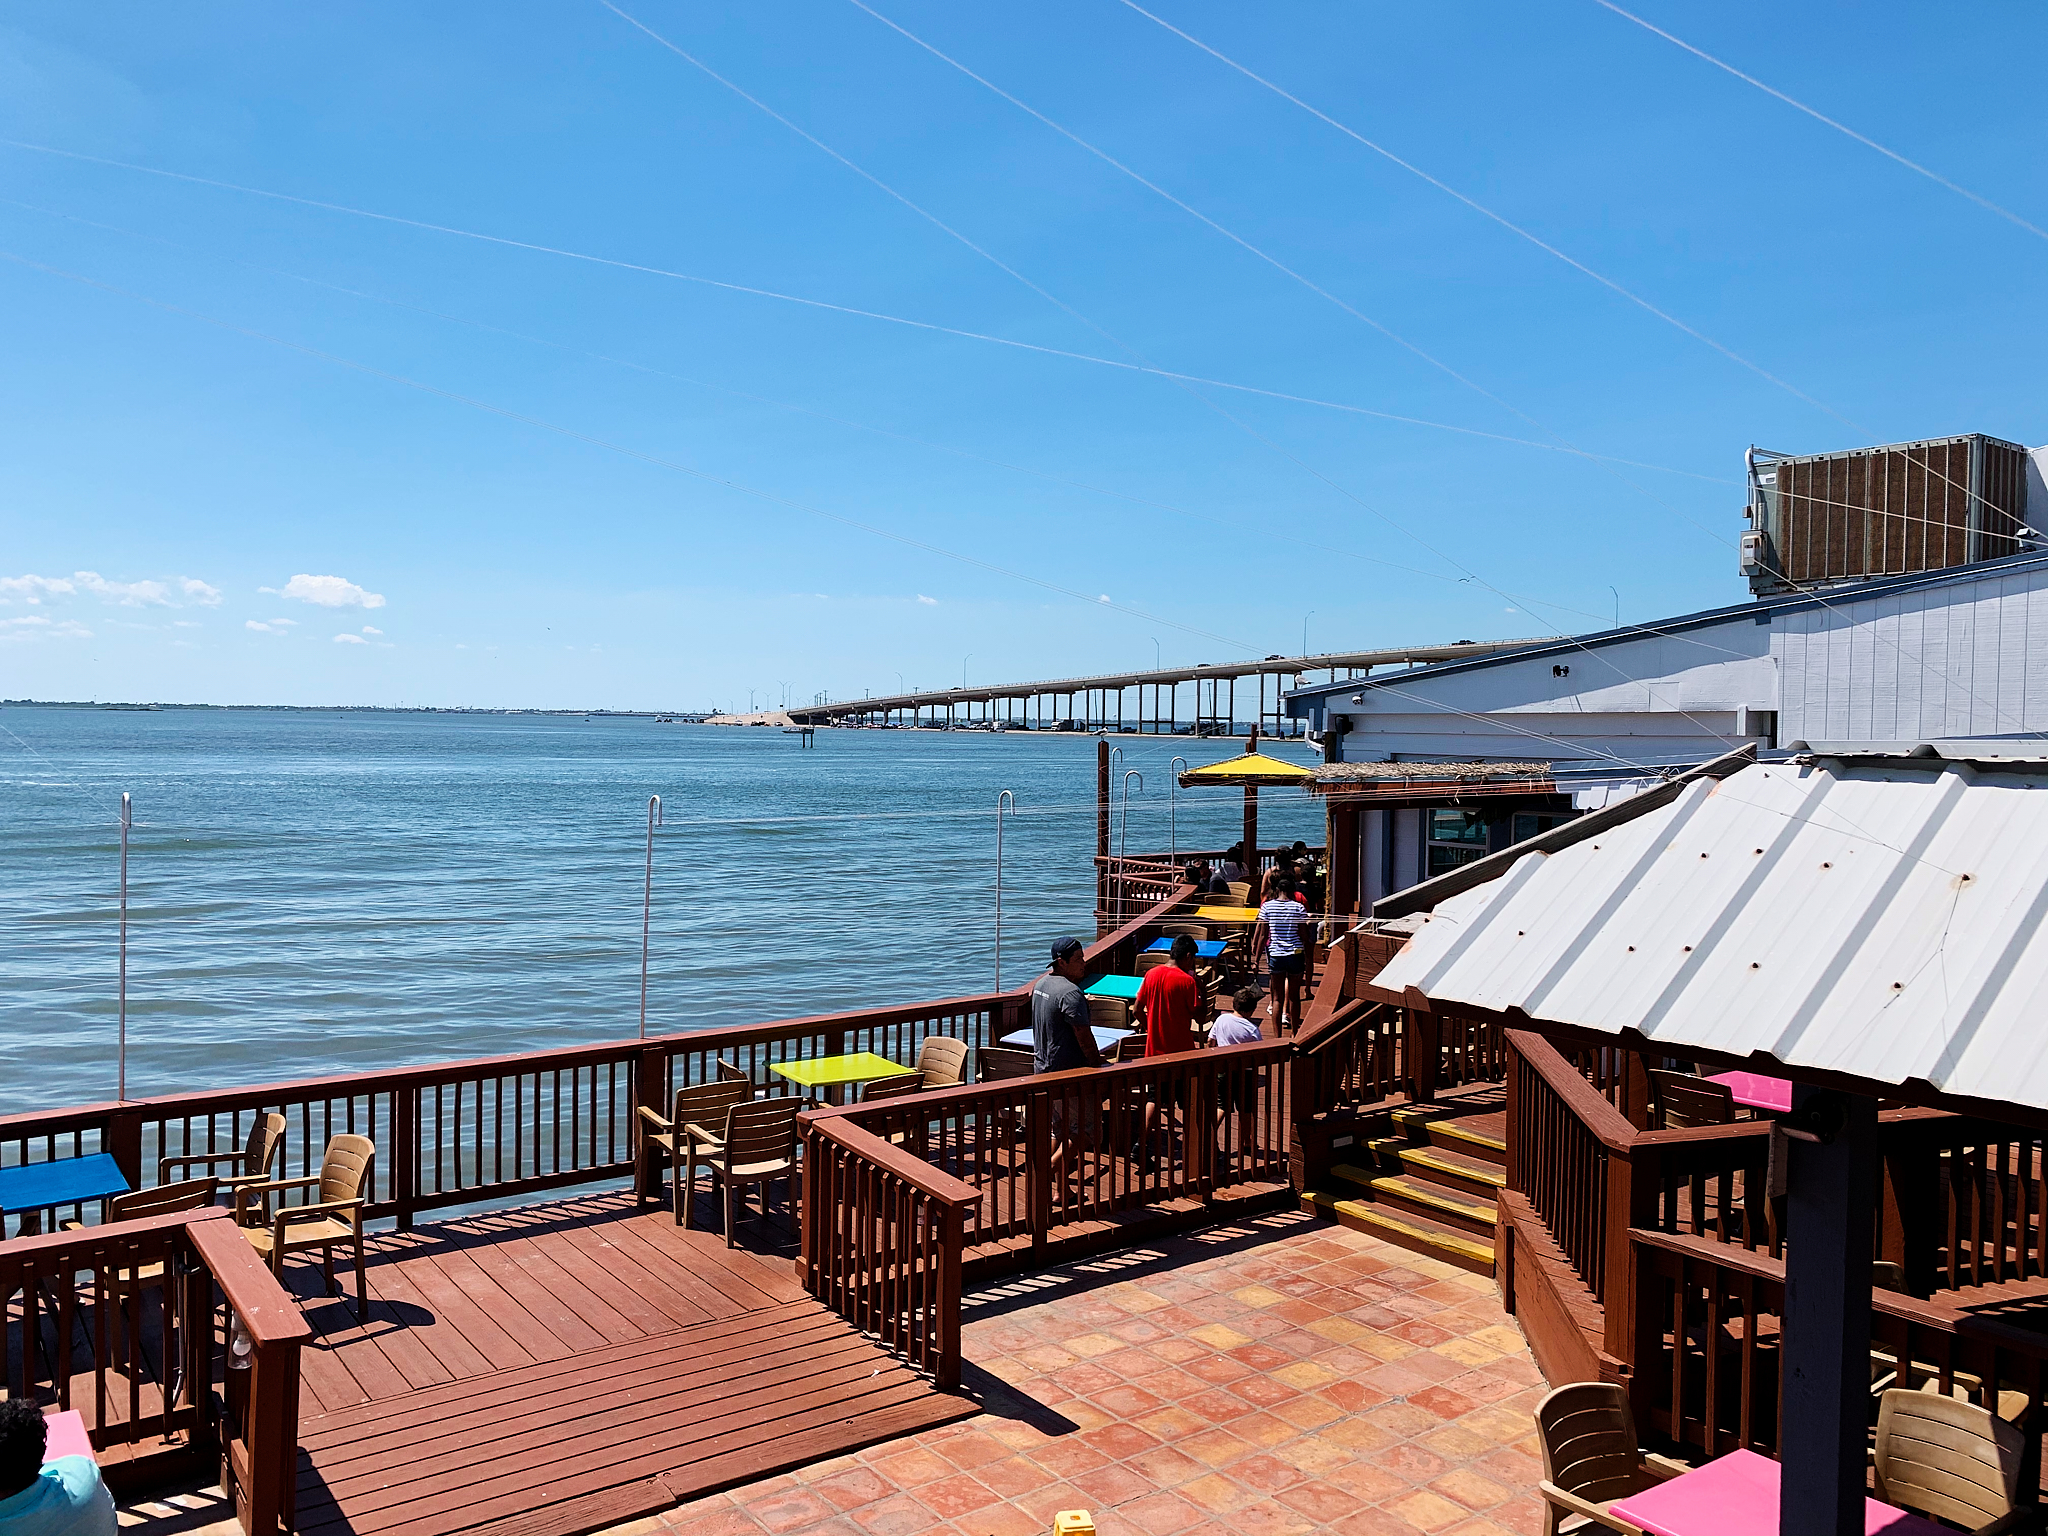 Snoopy's is located on a pier / dock area with a bunch of other restaurants.